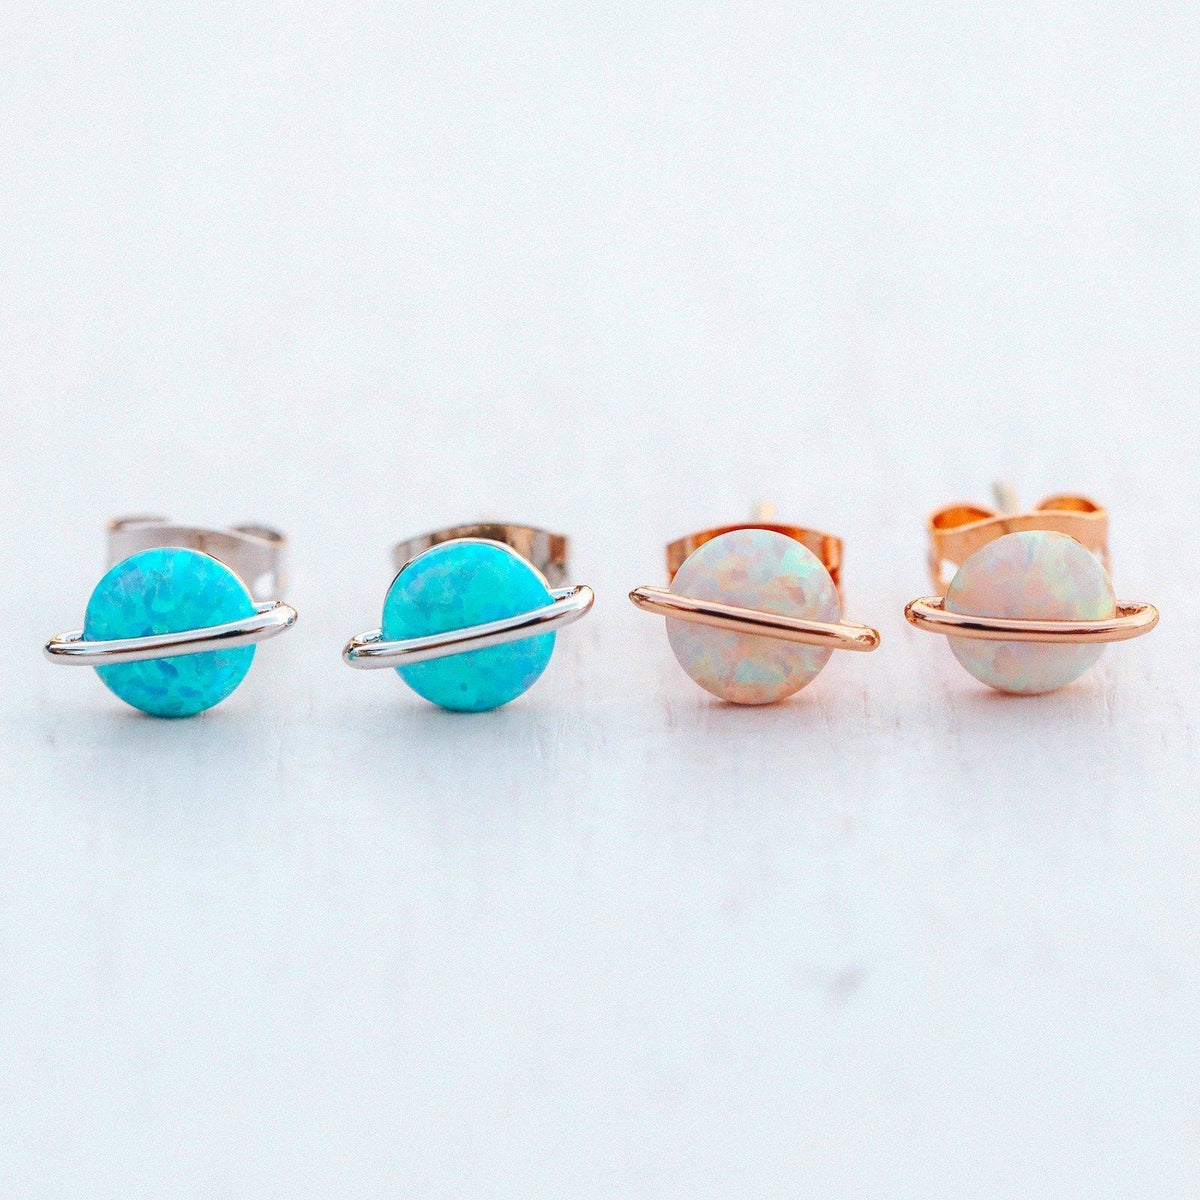 Opal Saturn Stud Earrings 9